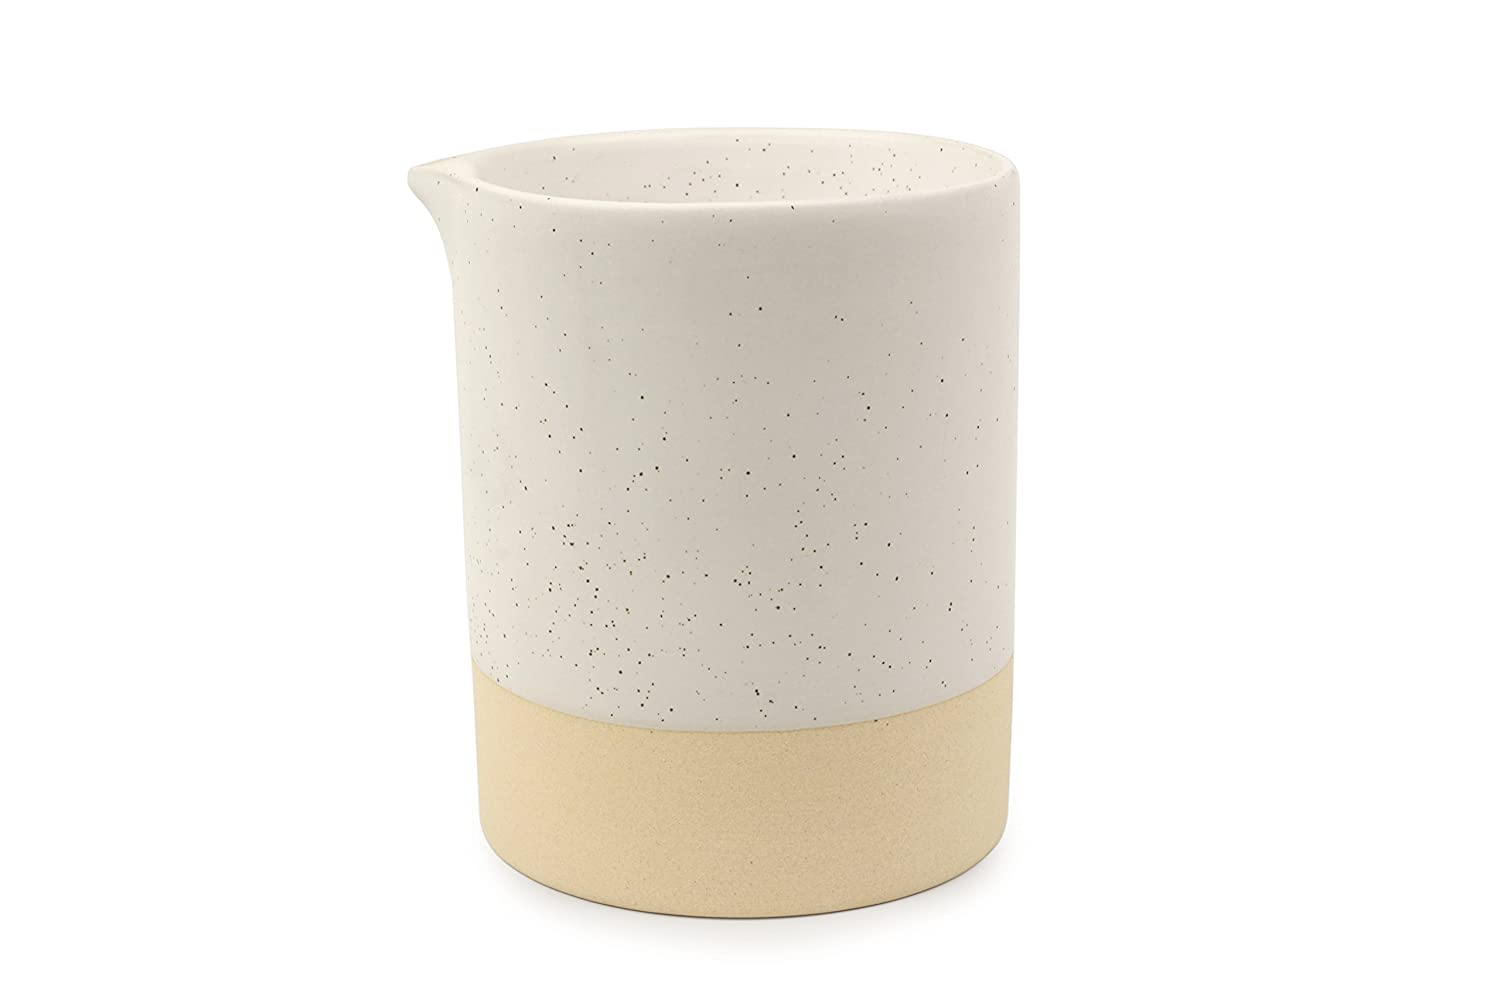 Paddywax Mesa Collection Scented Soy Wax Candle in Matte Speckled Ceramic, 10-Ounce, Black Salt & Birch